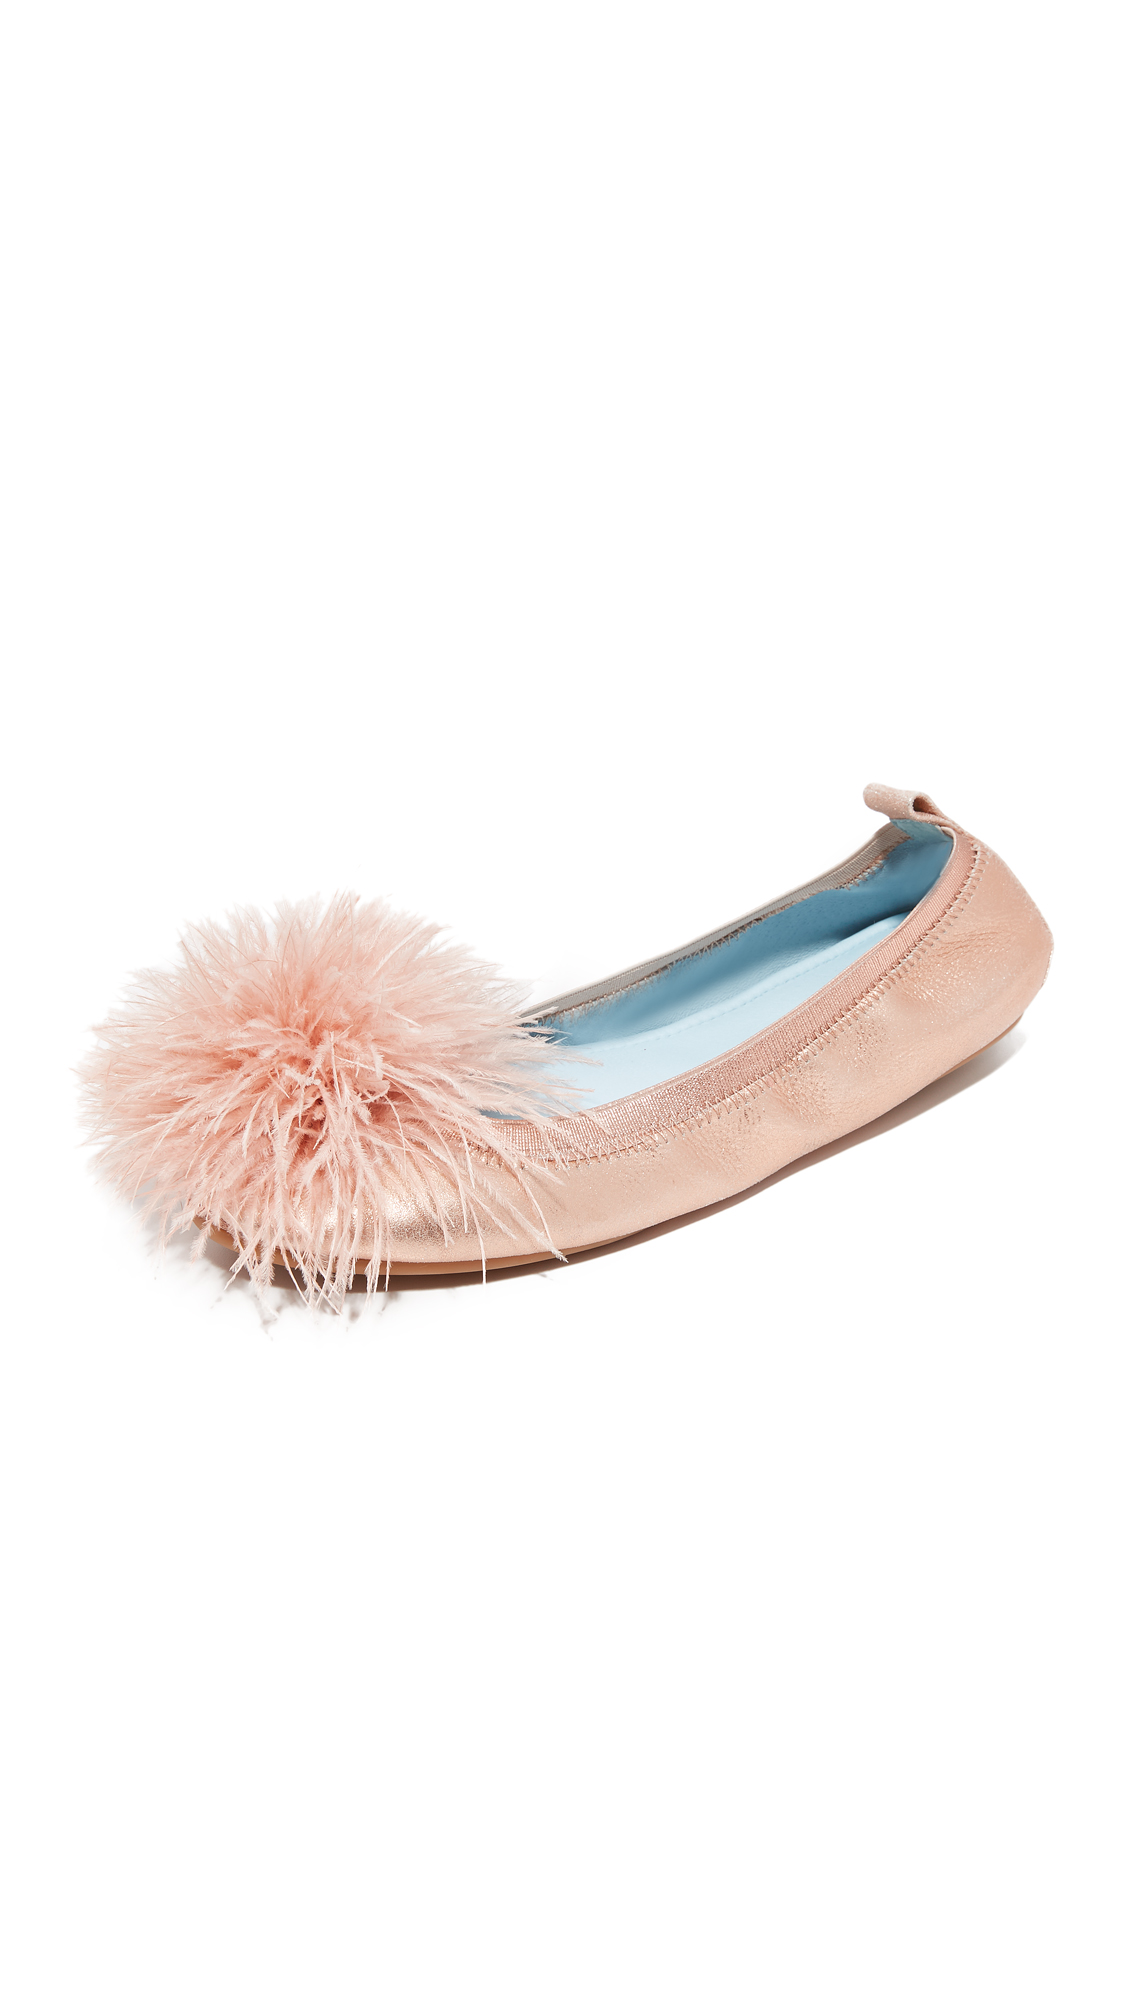 Yosi Samra HITCHED Marry Me Marabou Flats - Rose Gold/Blush